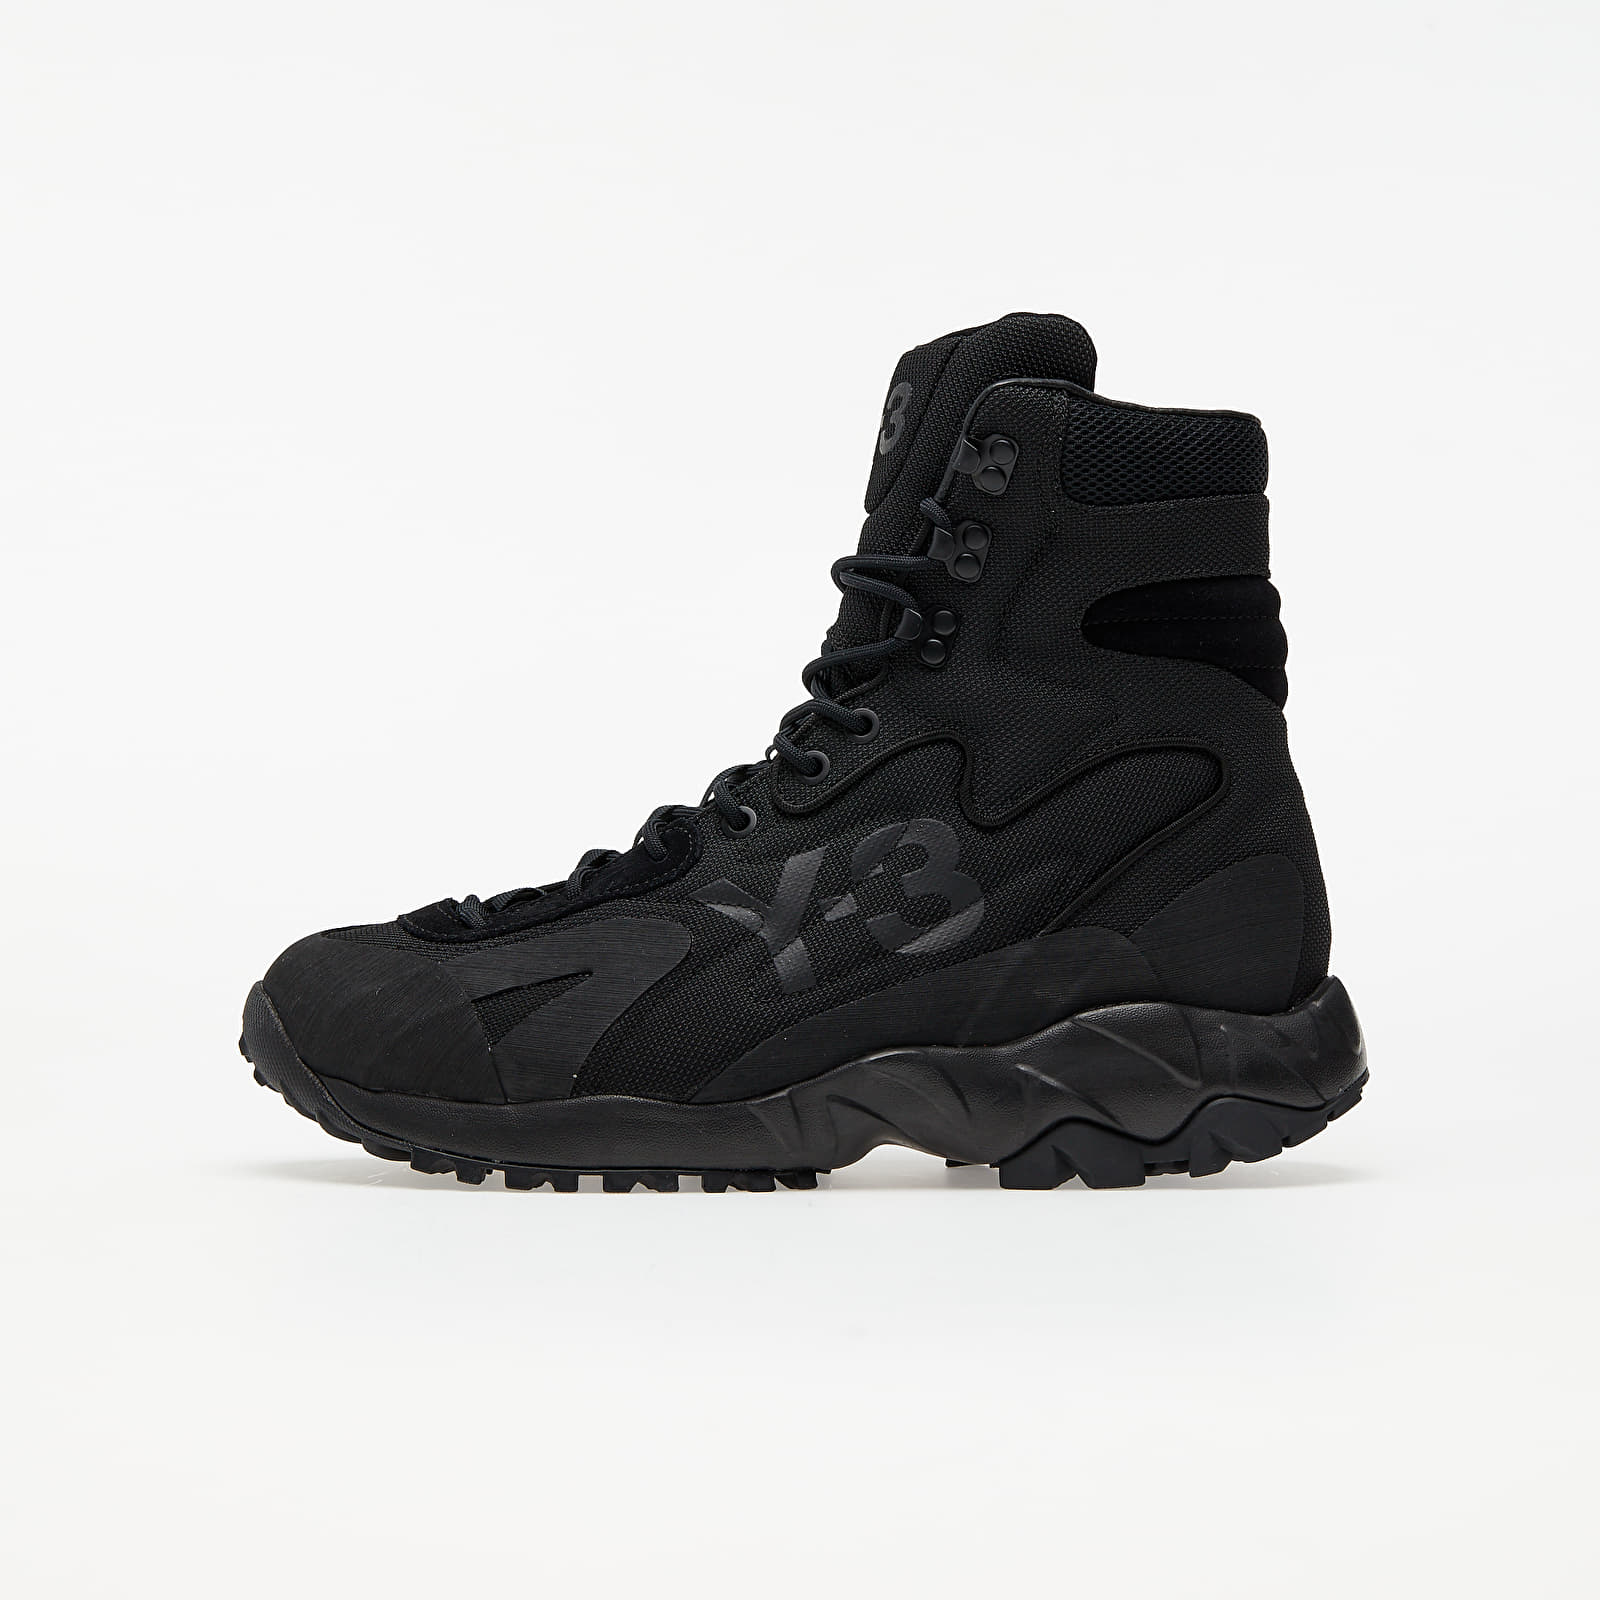 Chaussures et baskets homme Y-3 Notoma Black/ Black/ Night Grey